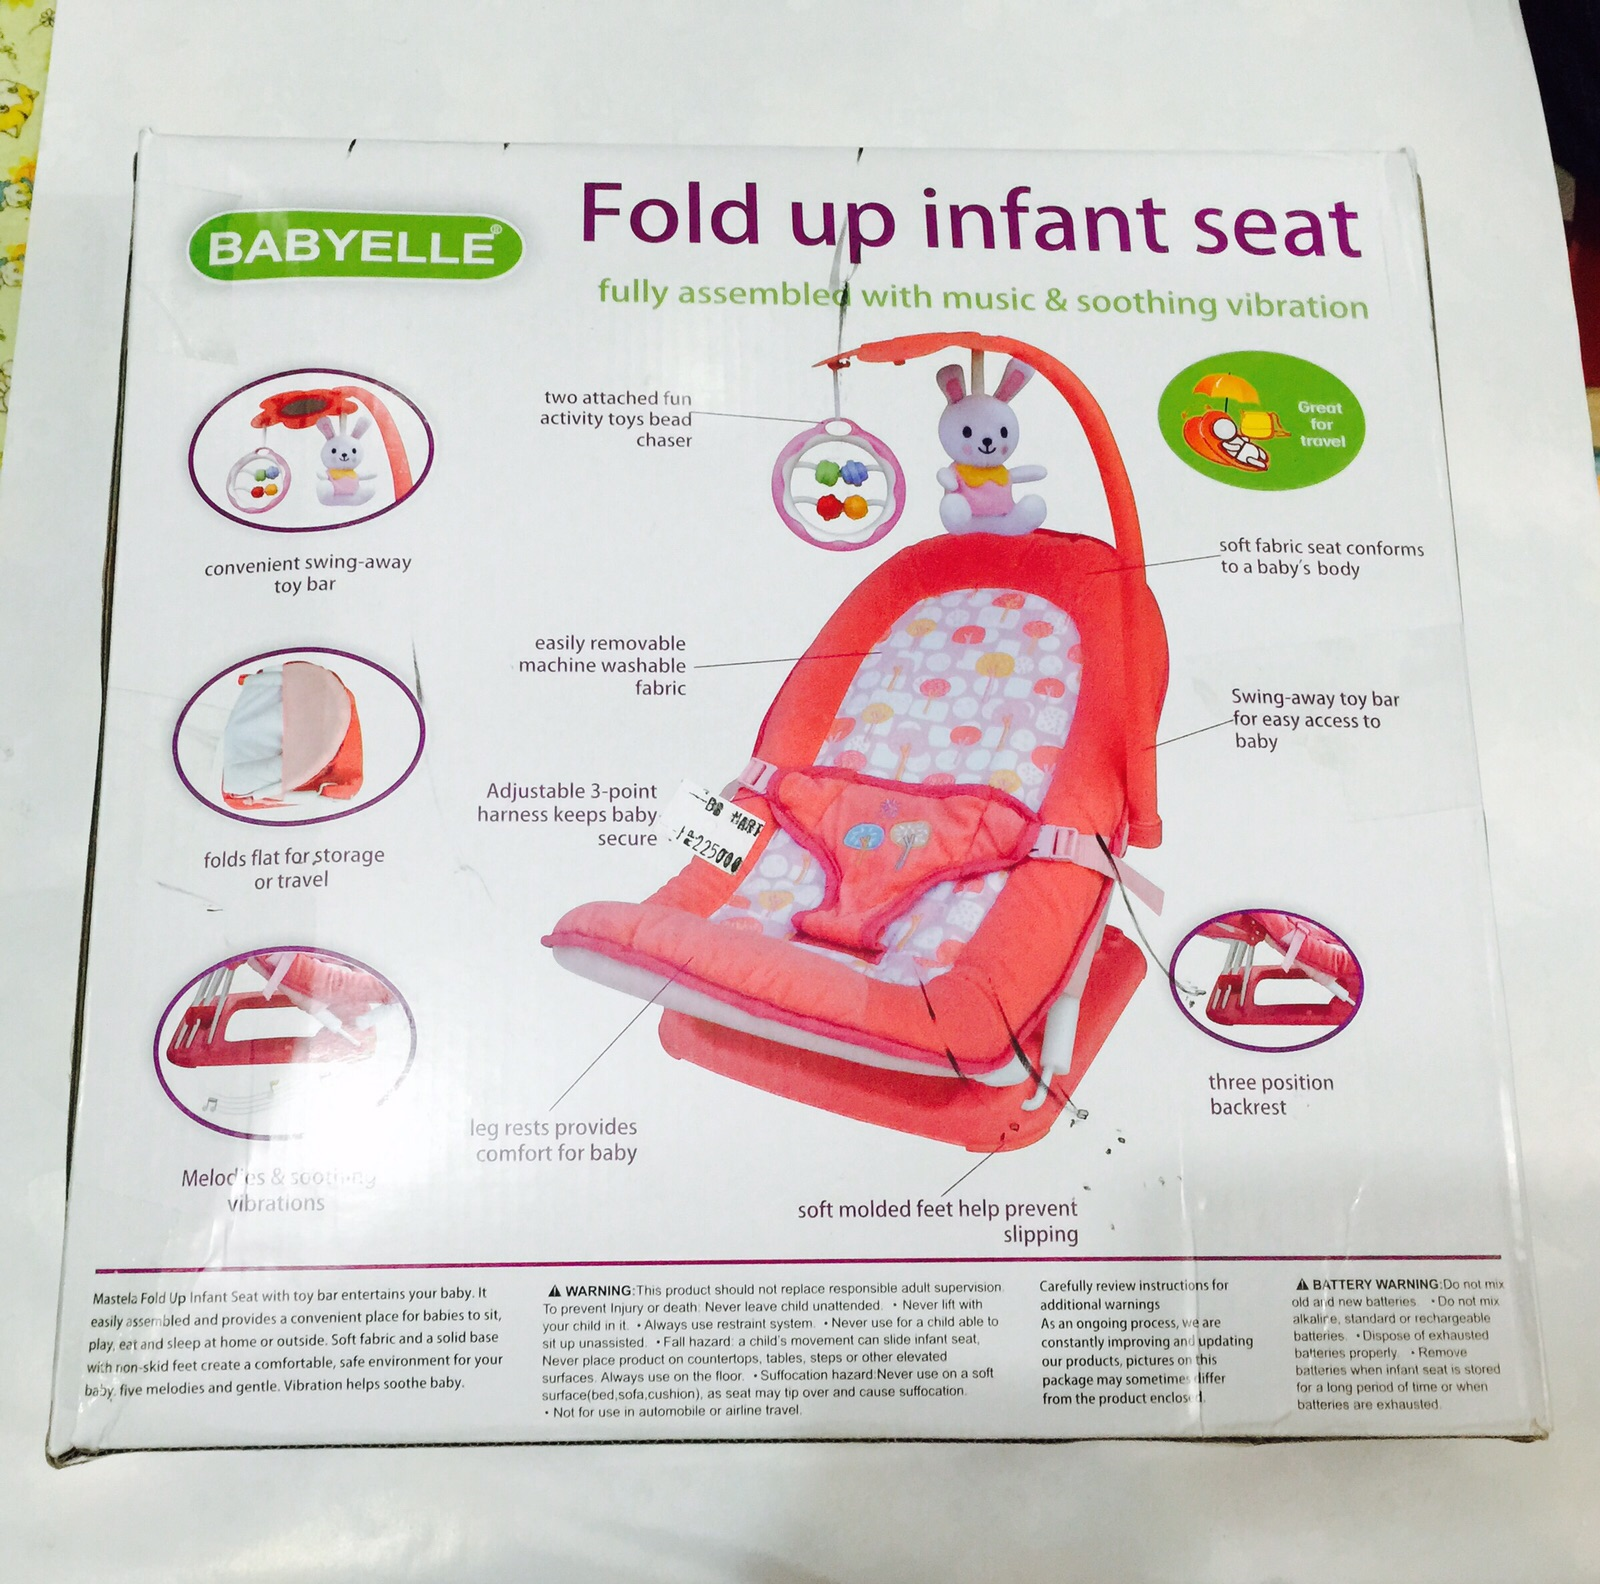 Melodies And Source Jual KURSI LIPAT BAYI Babyelle Fold Up Infant Seat kenichi .